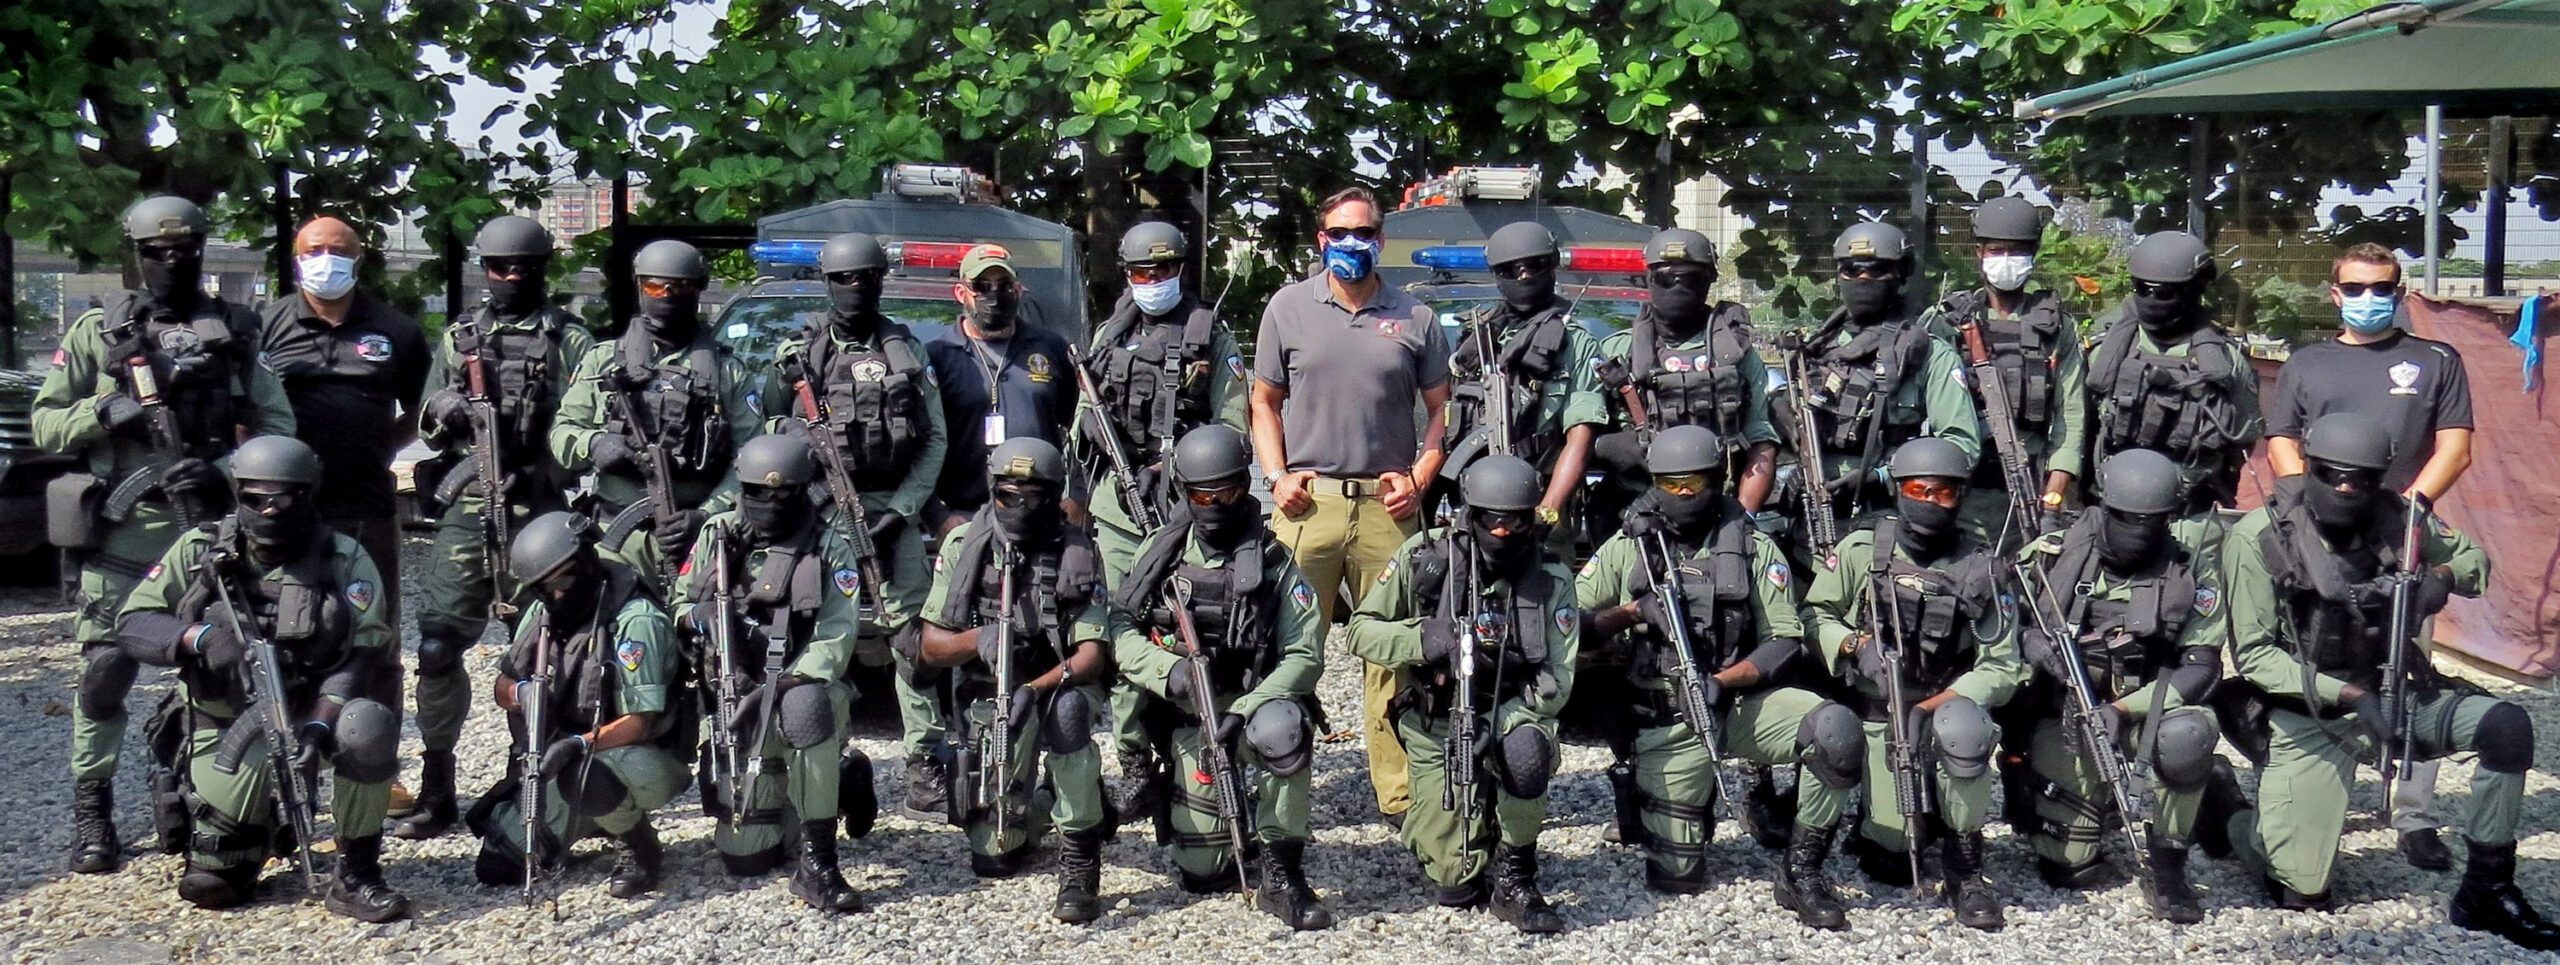 Police with the Lagos, Nigeria, SPEAR team pose alongside U.S. Diplomatic Security Service counterparts in November 2020. The police are part of a Special Program for Embassy Augmentation Response (SPEAR) team, assigned to protect U.S. diplomatic facilities and personnel. SPEAR teams are quick-response forces trained and funded by the Diplomatic Security Service's Office of Antiterrorism Assistance (ATA). (Department of State photo)